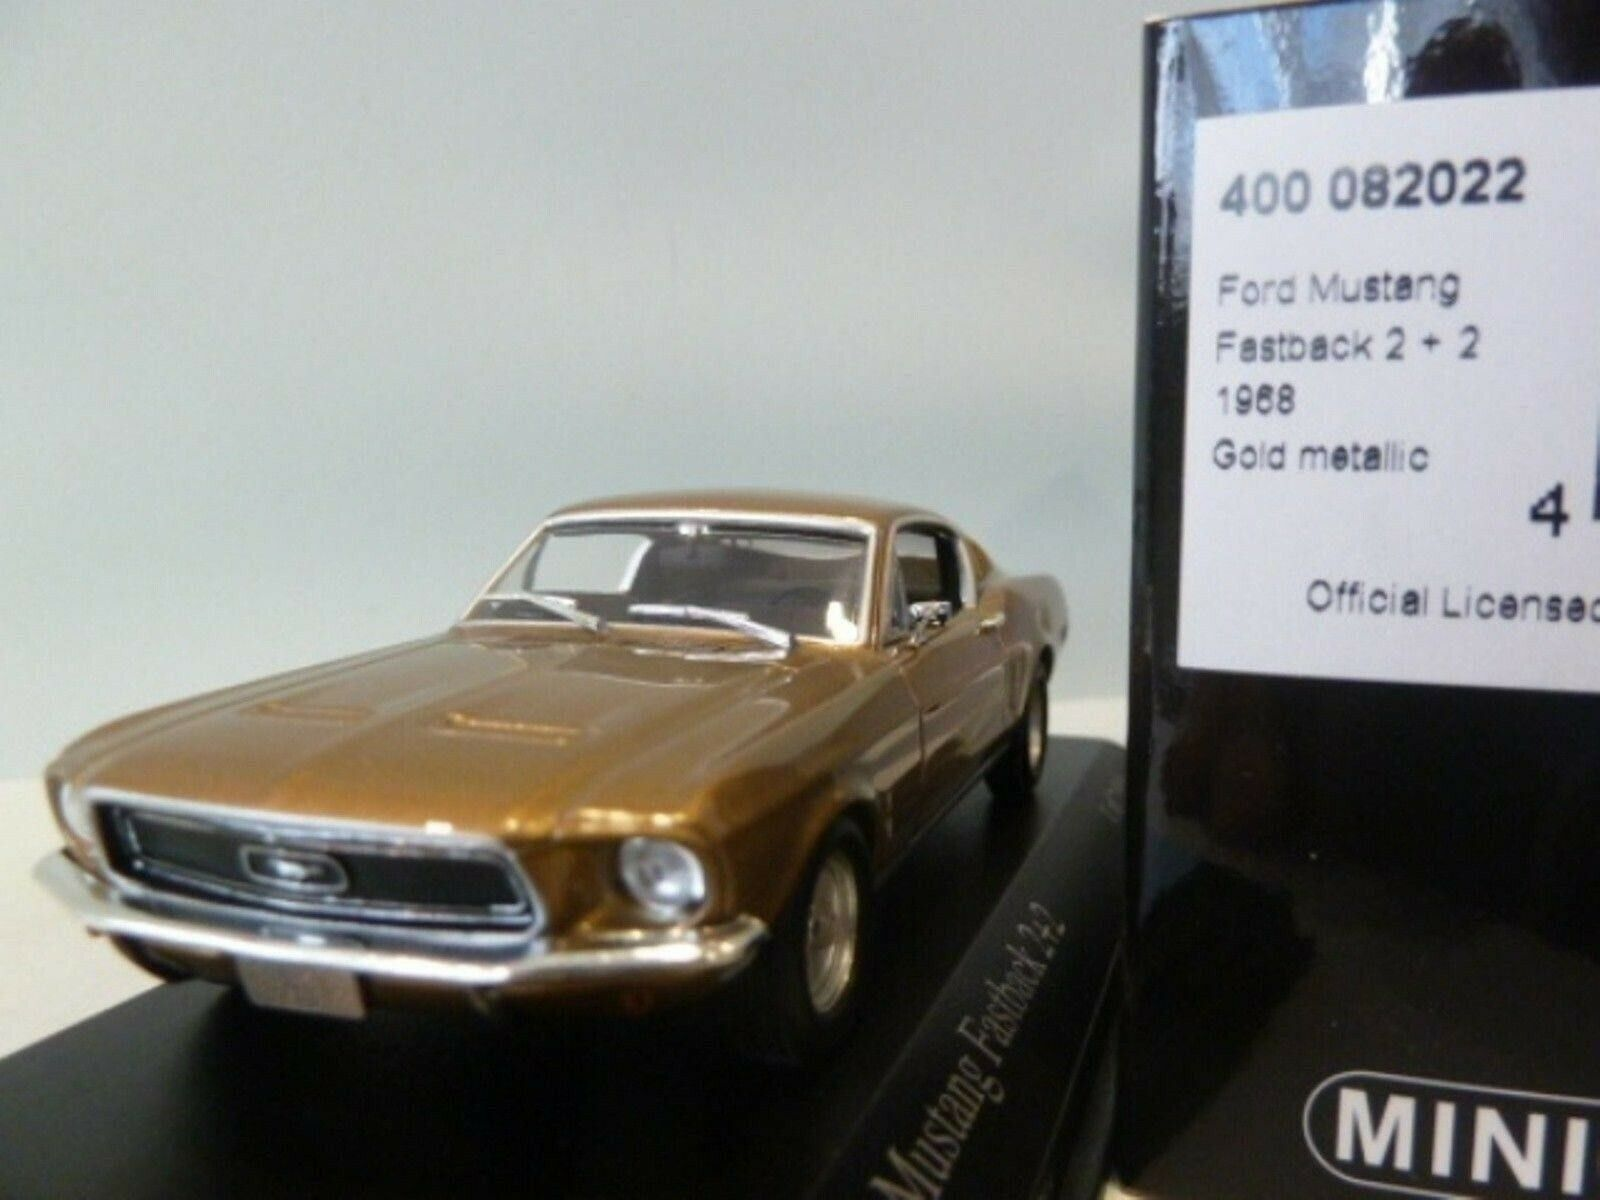 Wow extrêmement rare Ford Mustang 1968 Vintage 2+2 or 1 43 Minichamps-Mach 1 GT